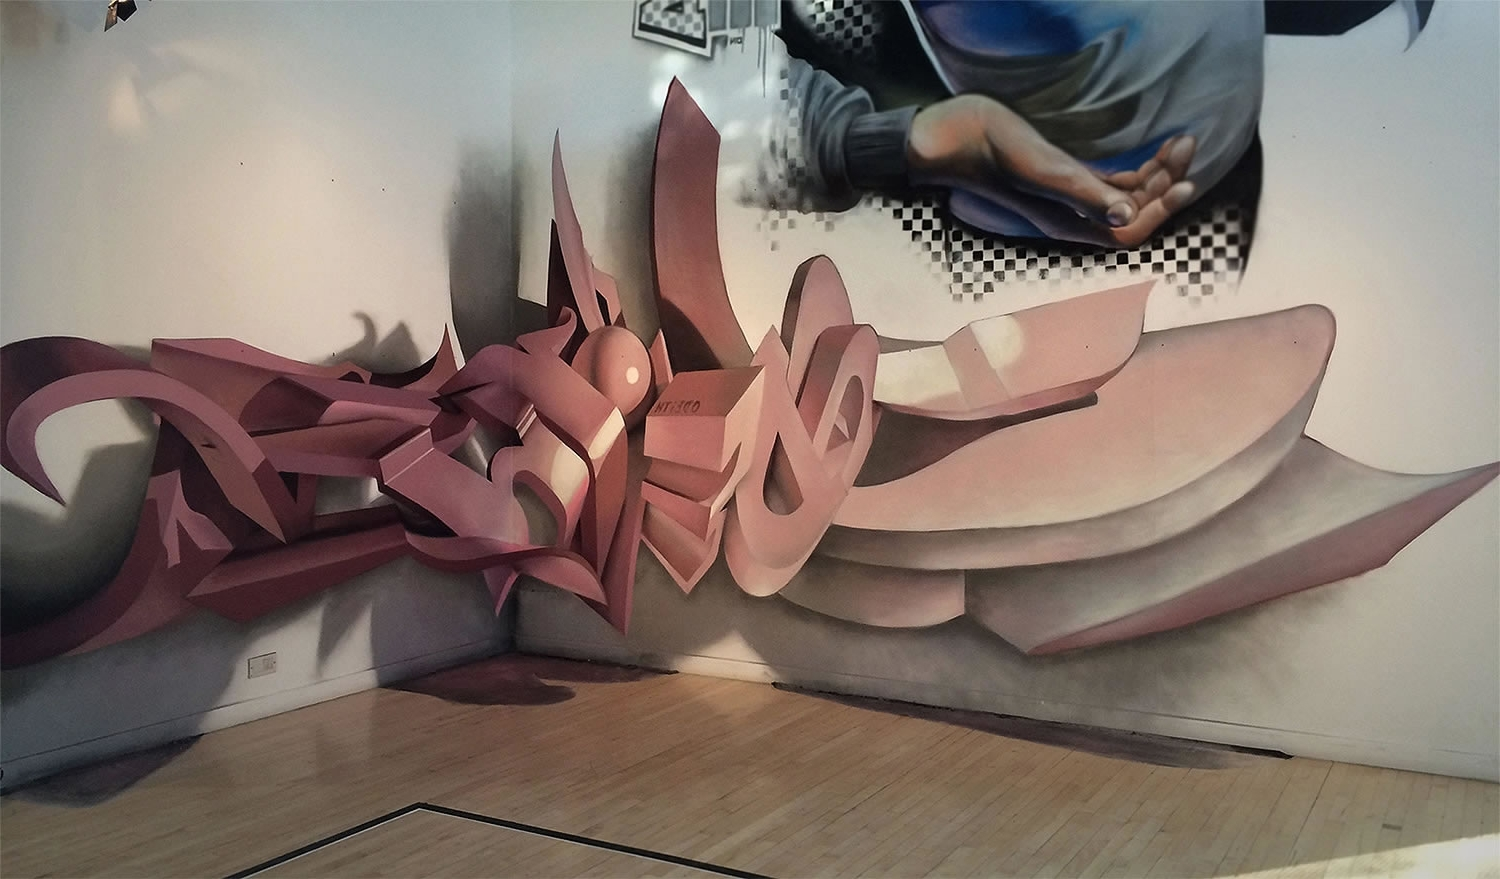 3D Letters, Graffiti And 3D Pertaining To 3D Wall Art Illusions (View 1 of 15)